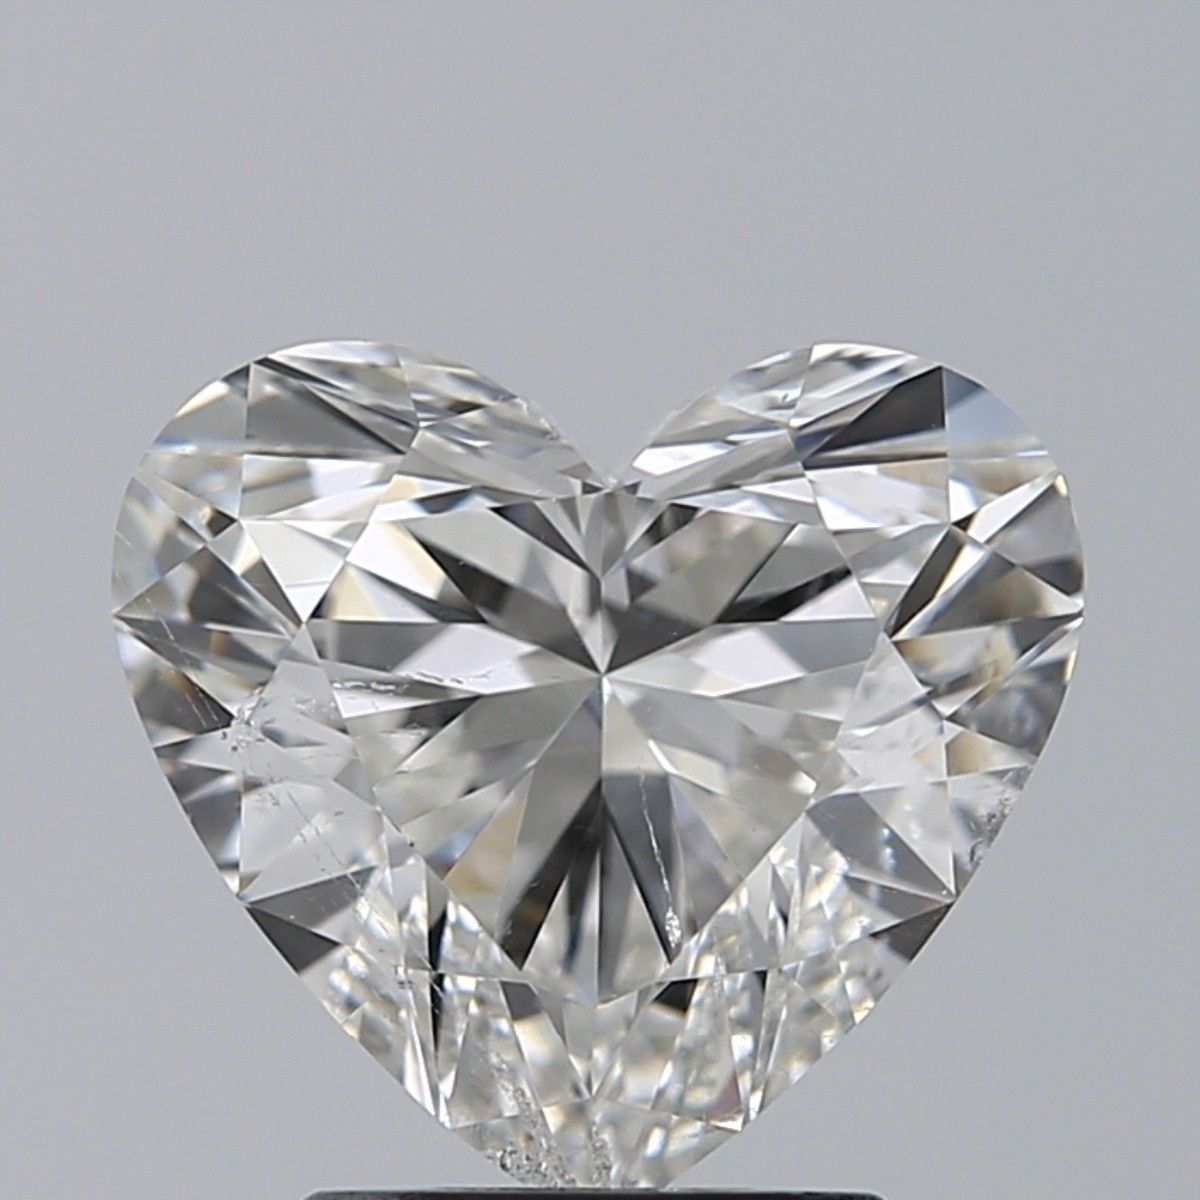 2.22 Carat Heart Diamond (G/SI2)